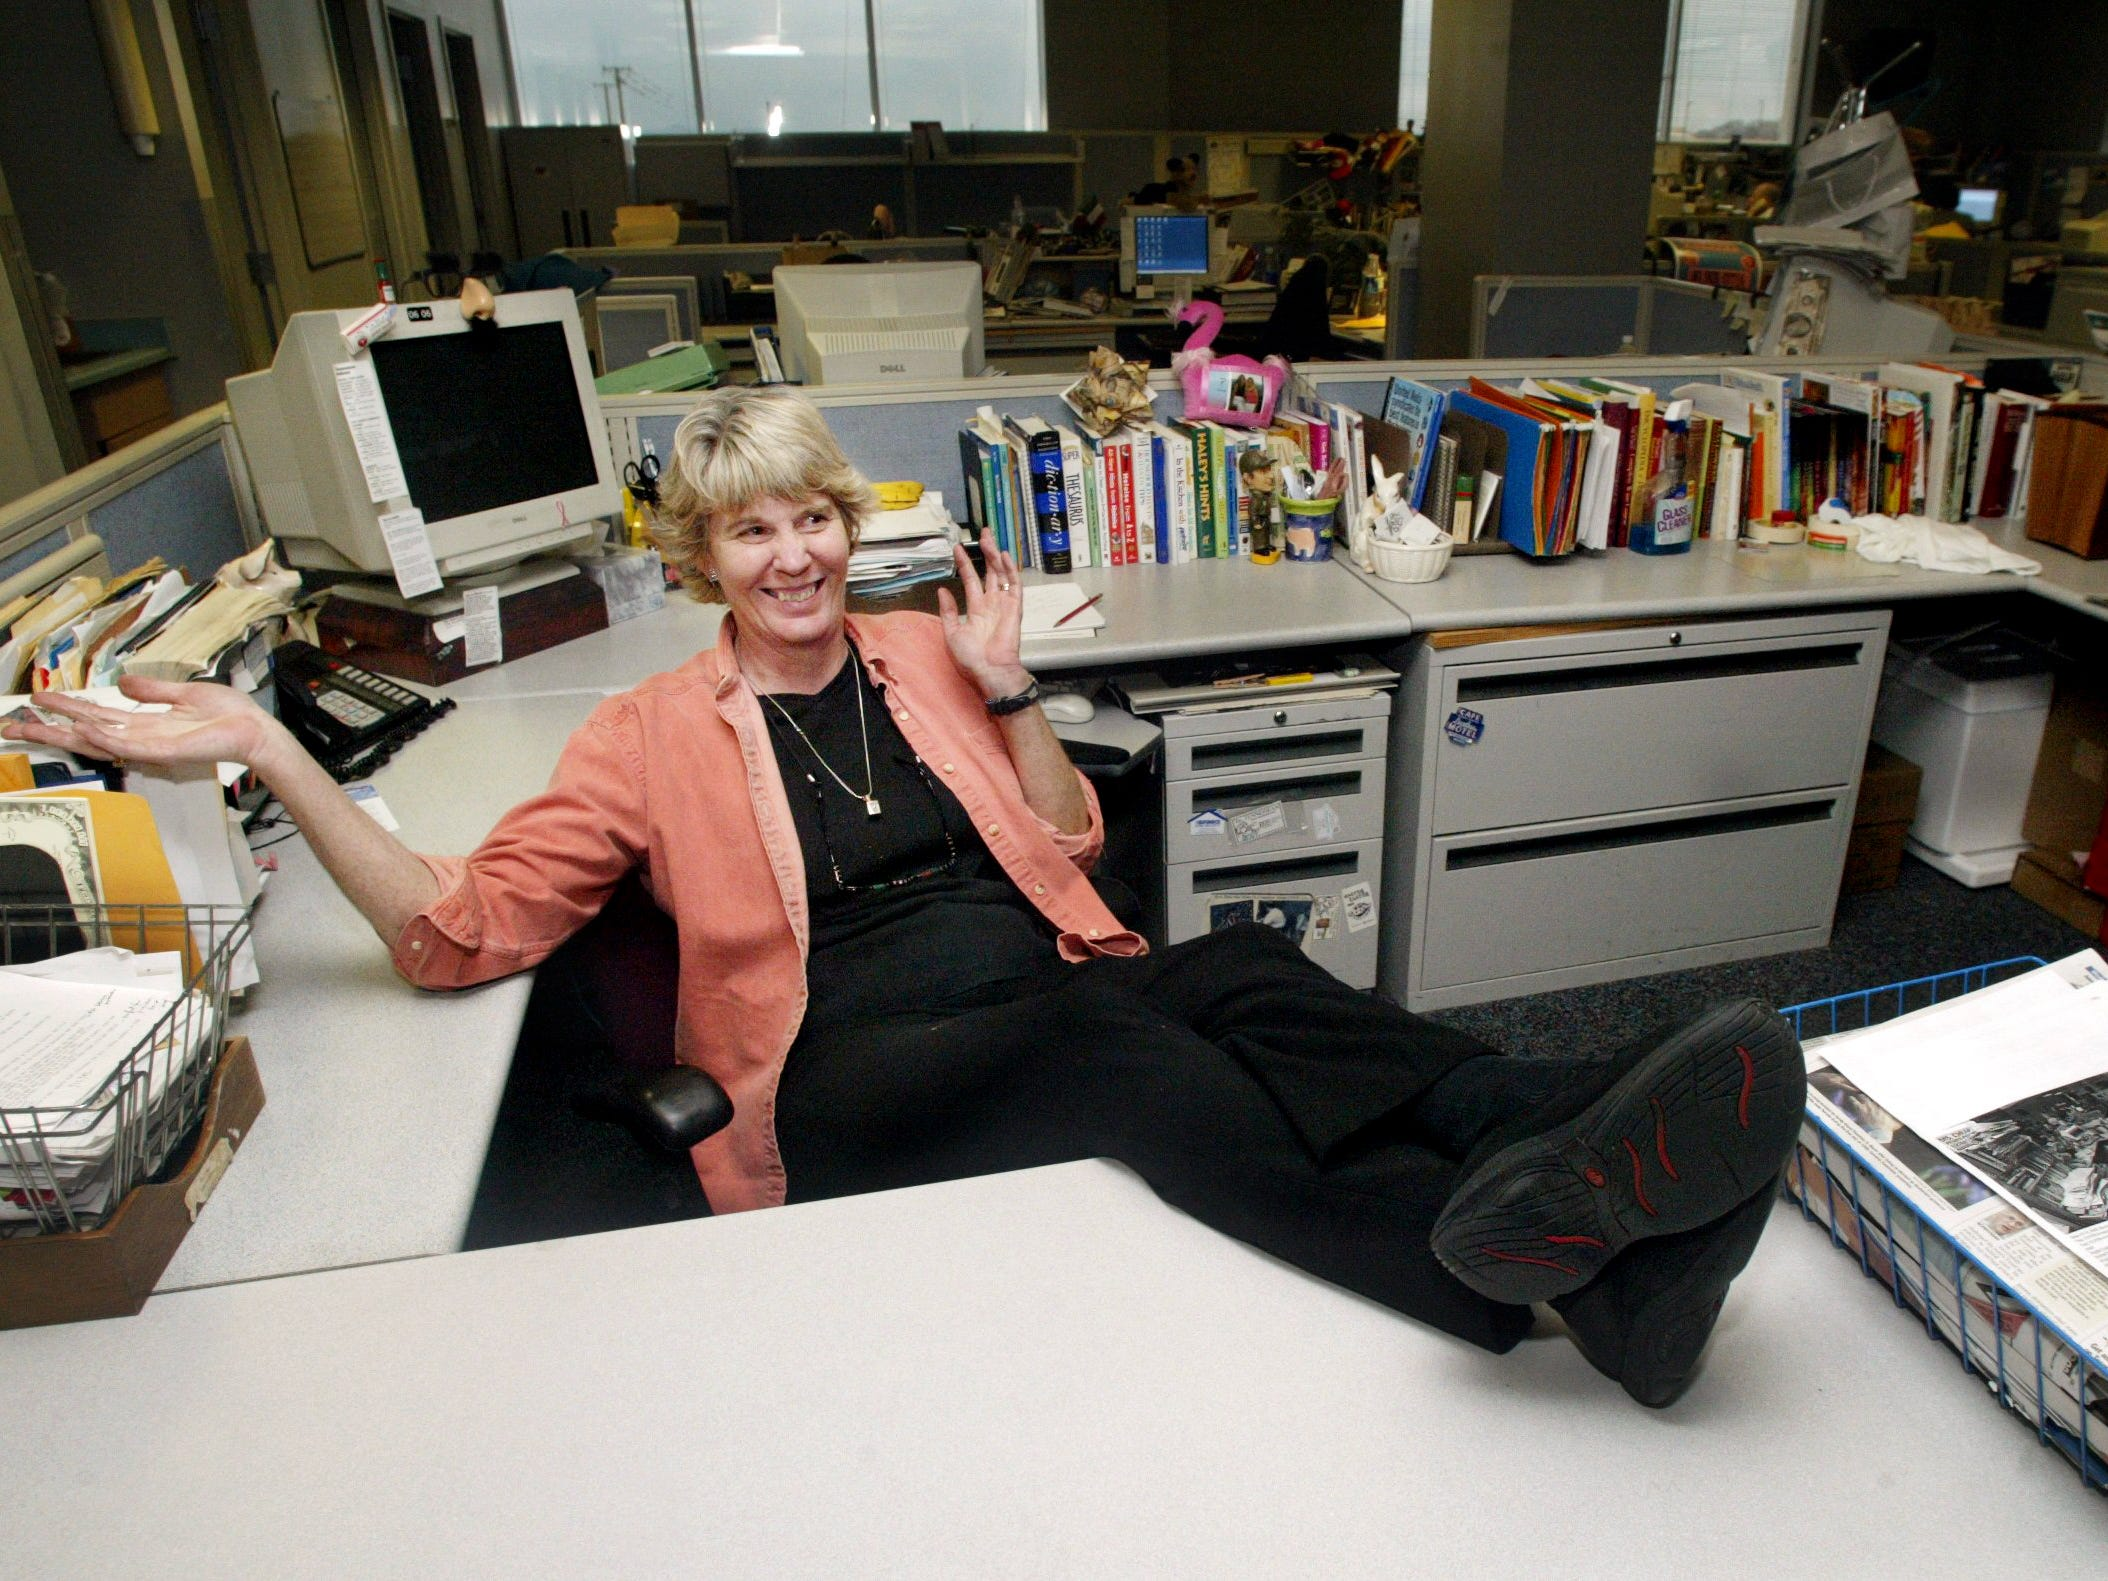 Ms. Cheap's new workspace at The Tennessean is clutter-free after her move and an extended session with a professional organizer Jan. 12, 2005.